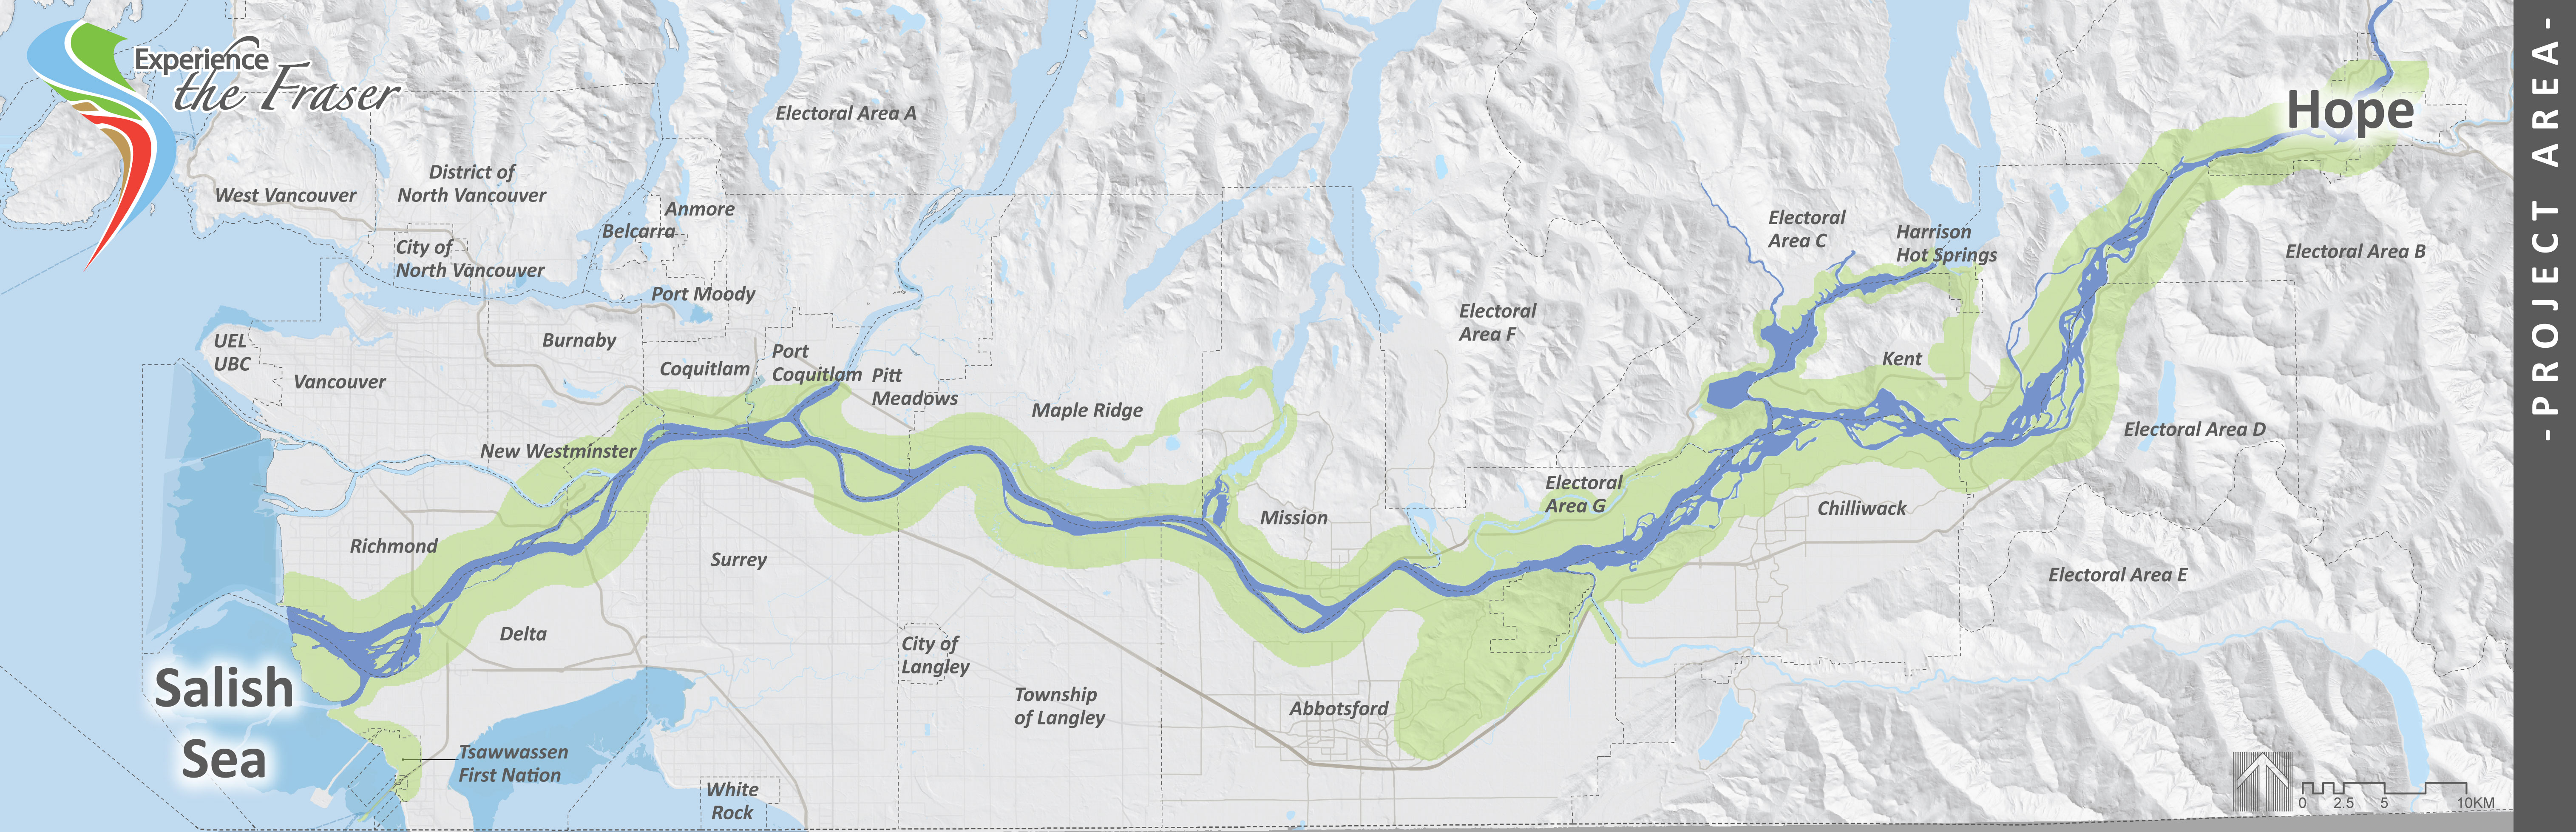 Fraser Valley Map Experience the Fraser | Fraser Valley Regional District